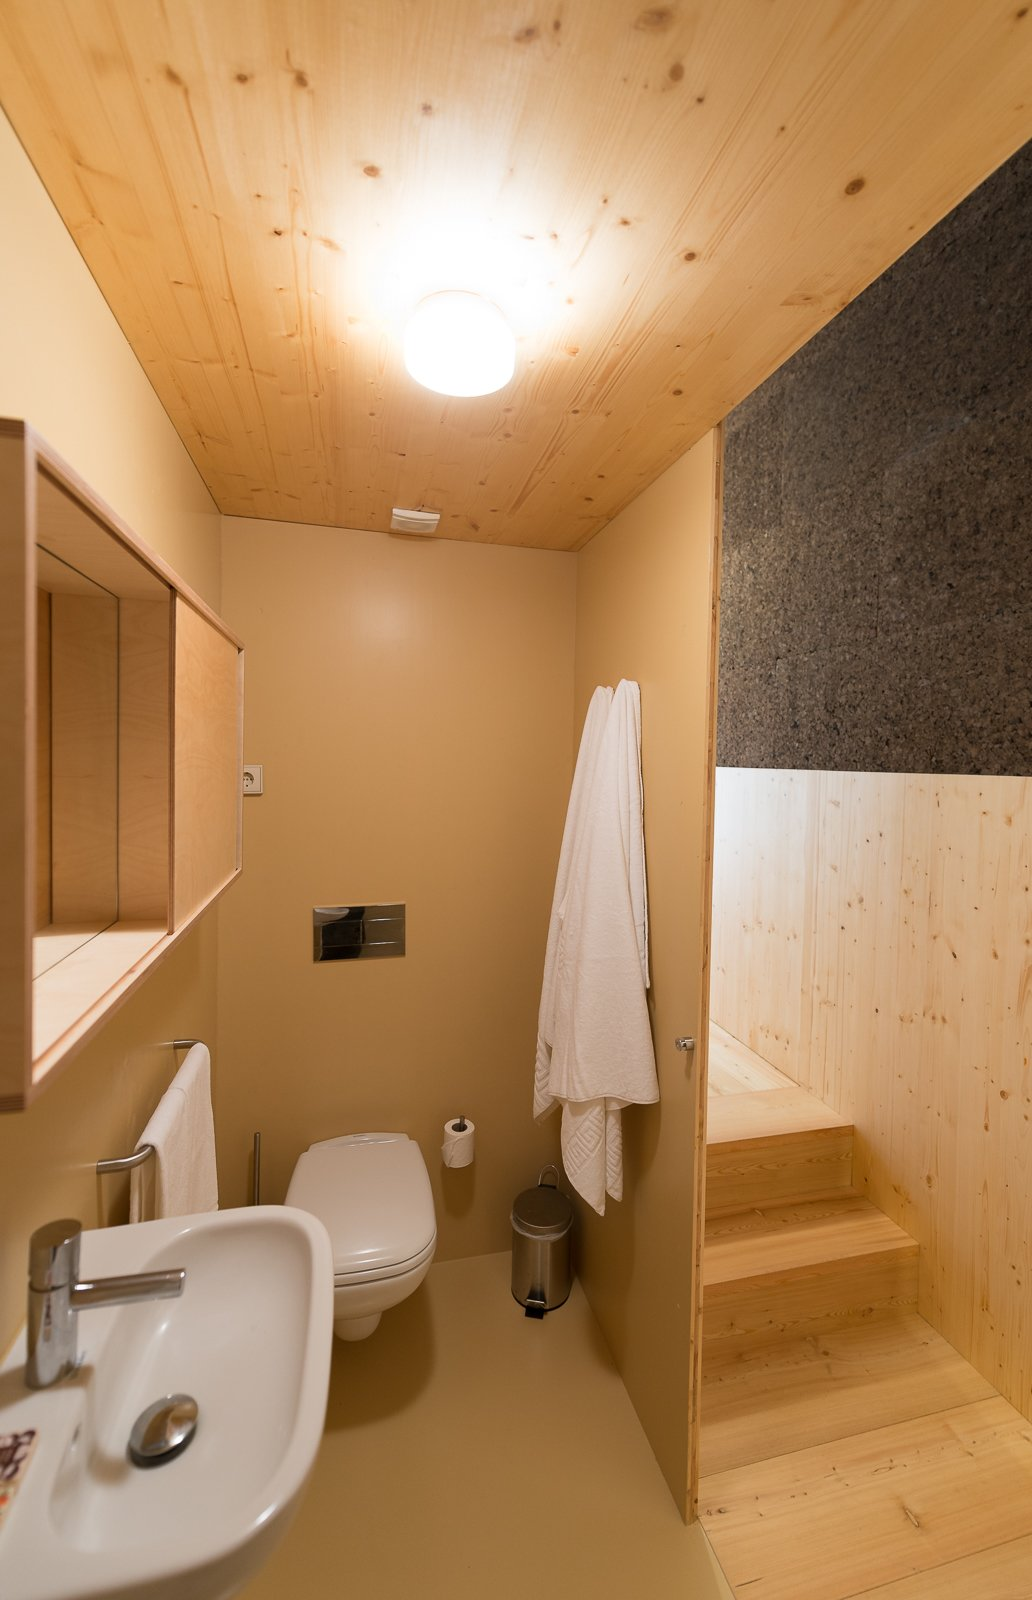 Bath Room, Light Hardwood Floor, Wall Mount Sink, One Piece Toilet, and Ceiling Lighting  Photo 6 of 16 in Stay in a Tiny, Eco-Friendly House in a Portuguese Schist Village